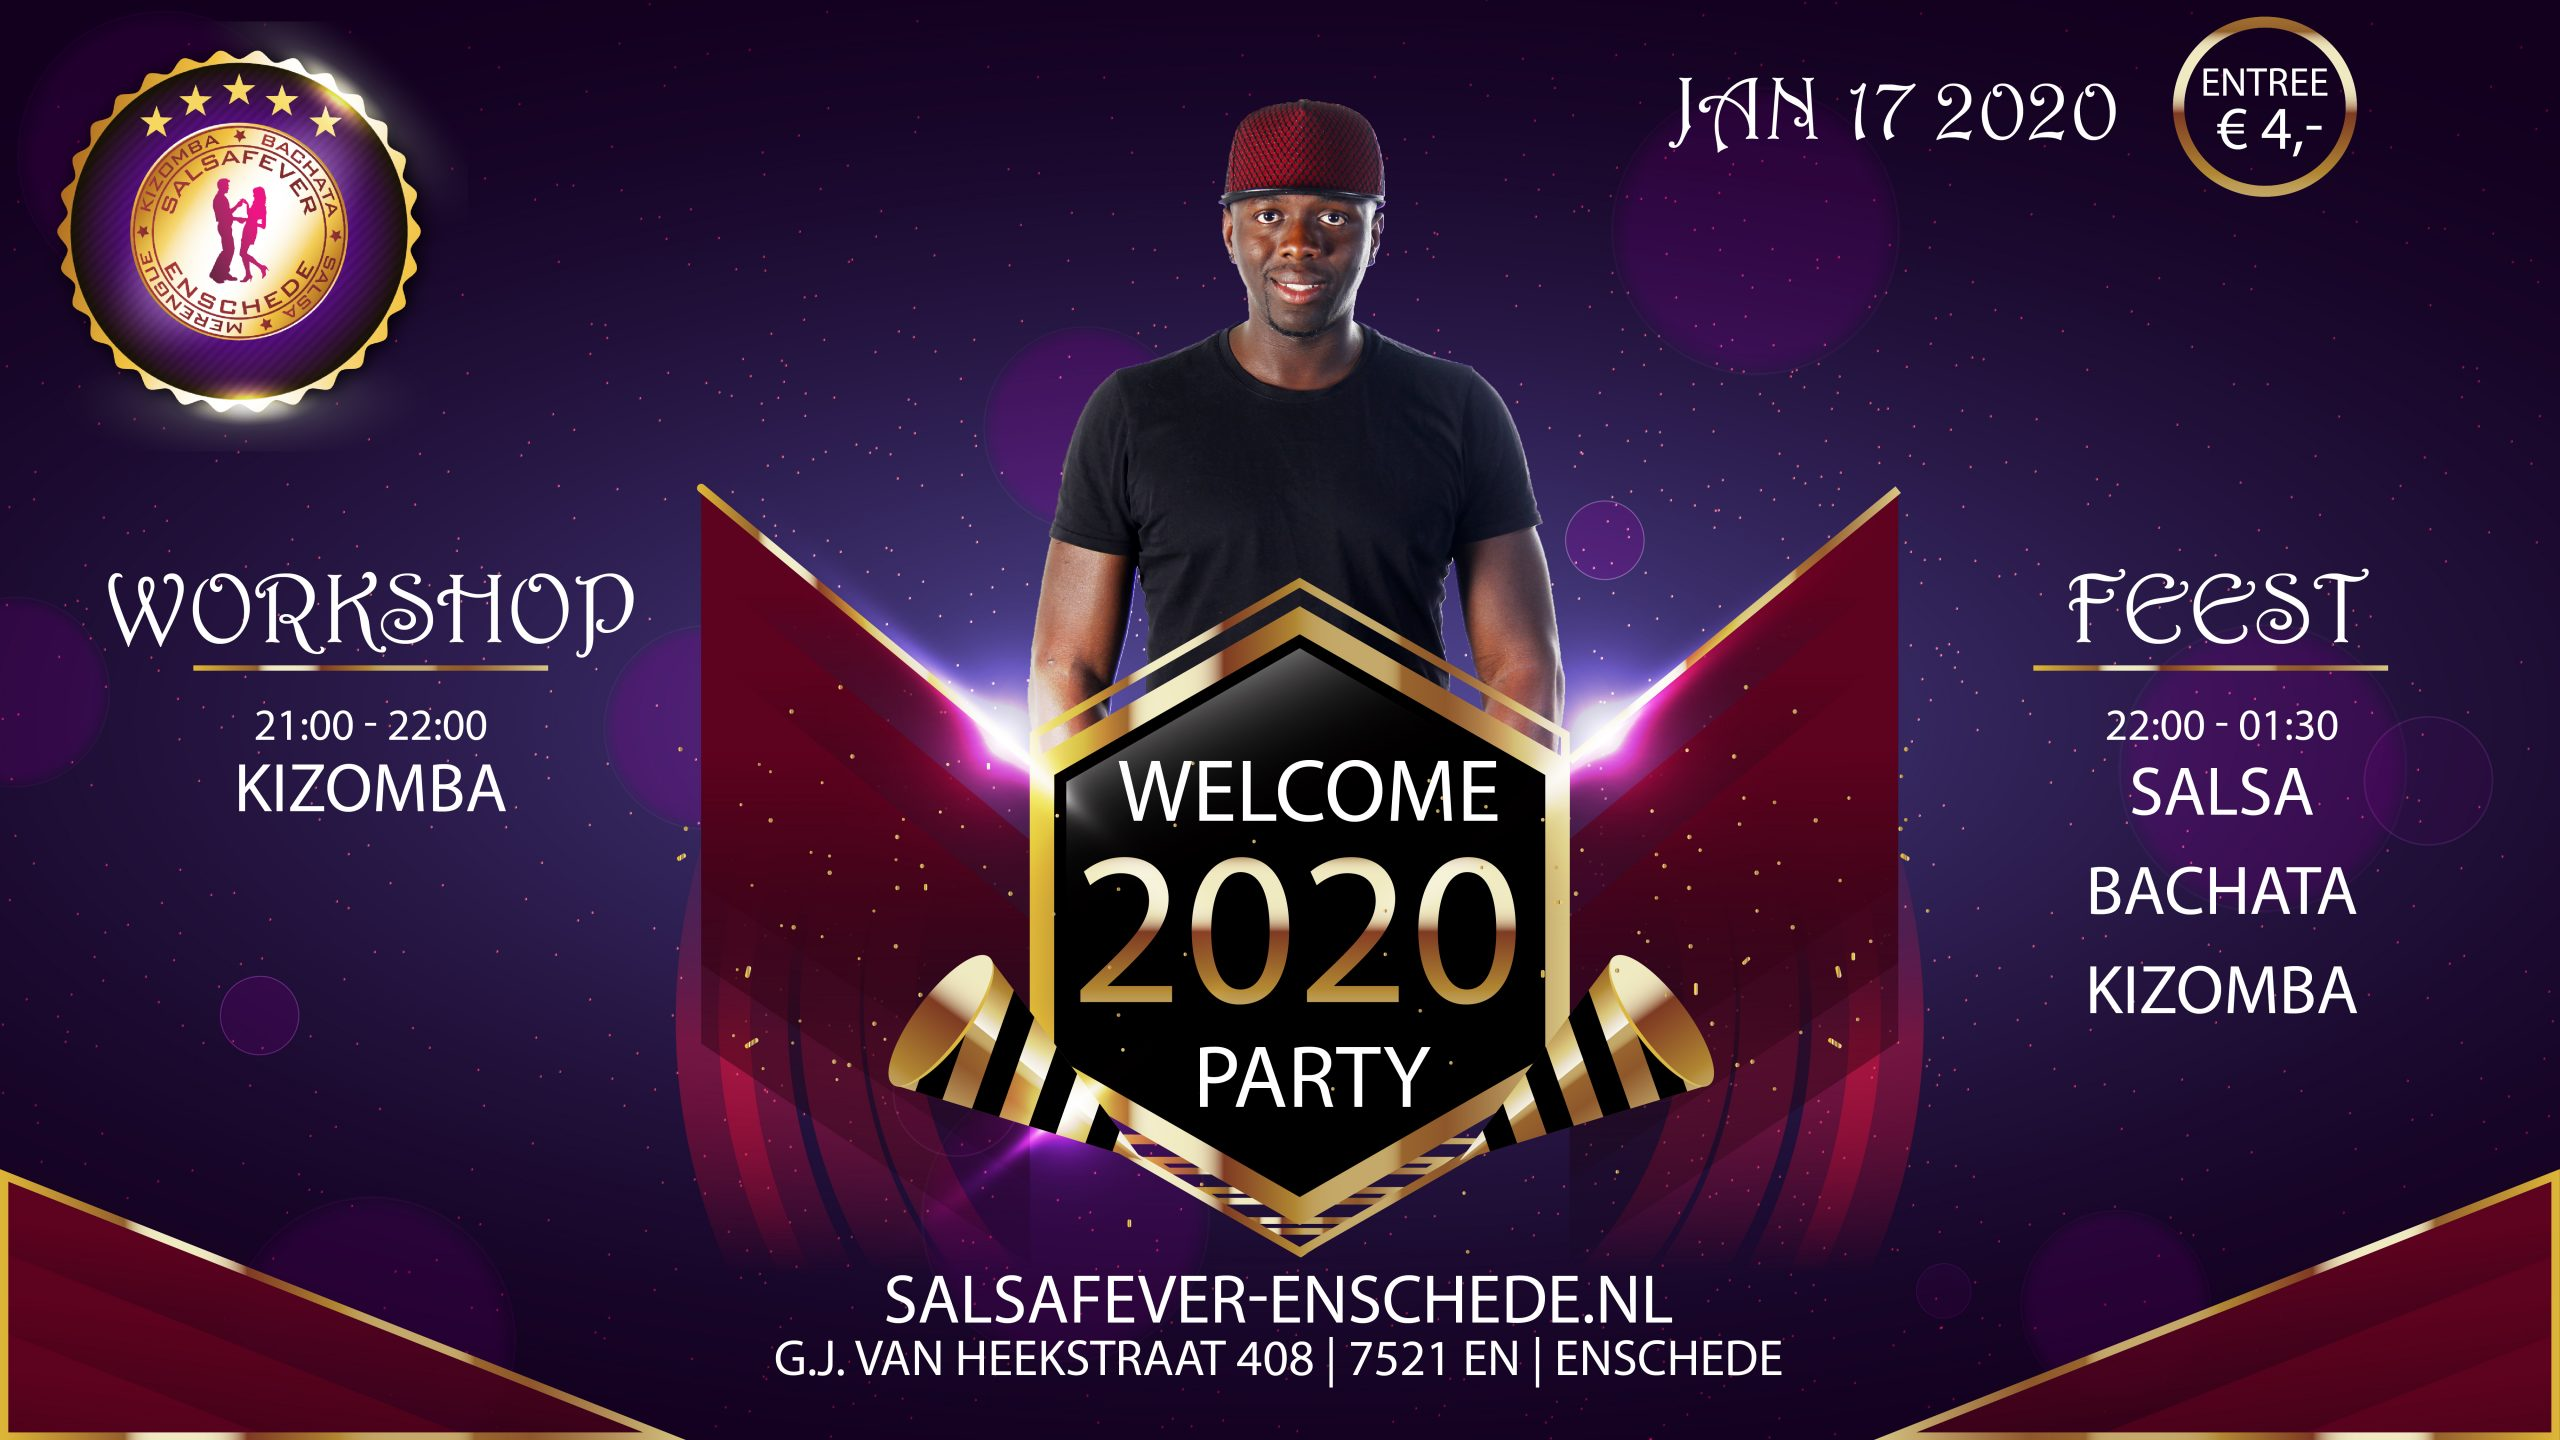 SalsaFever Enschede Welcome 2020 party